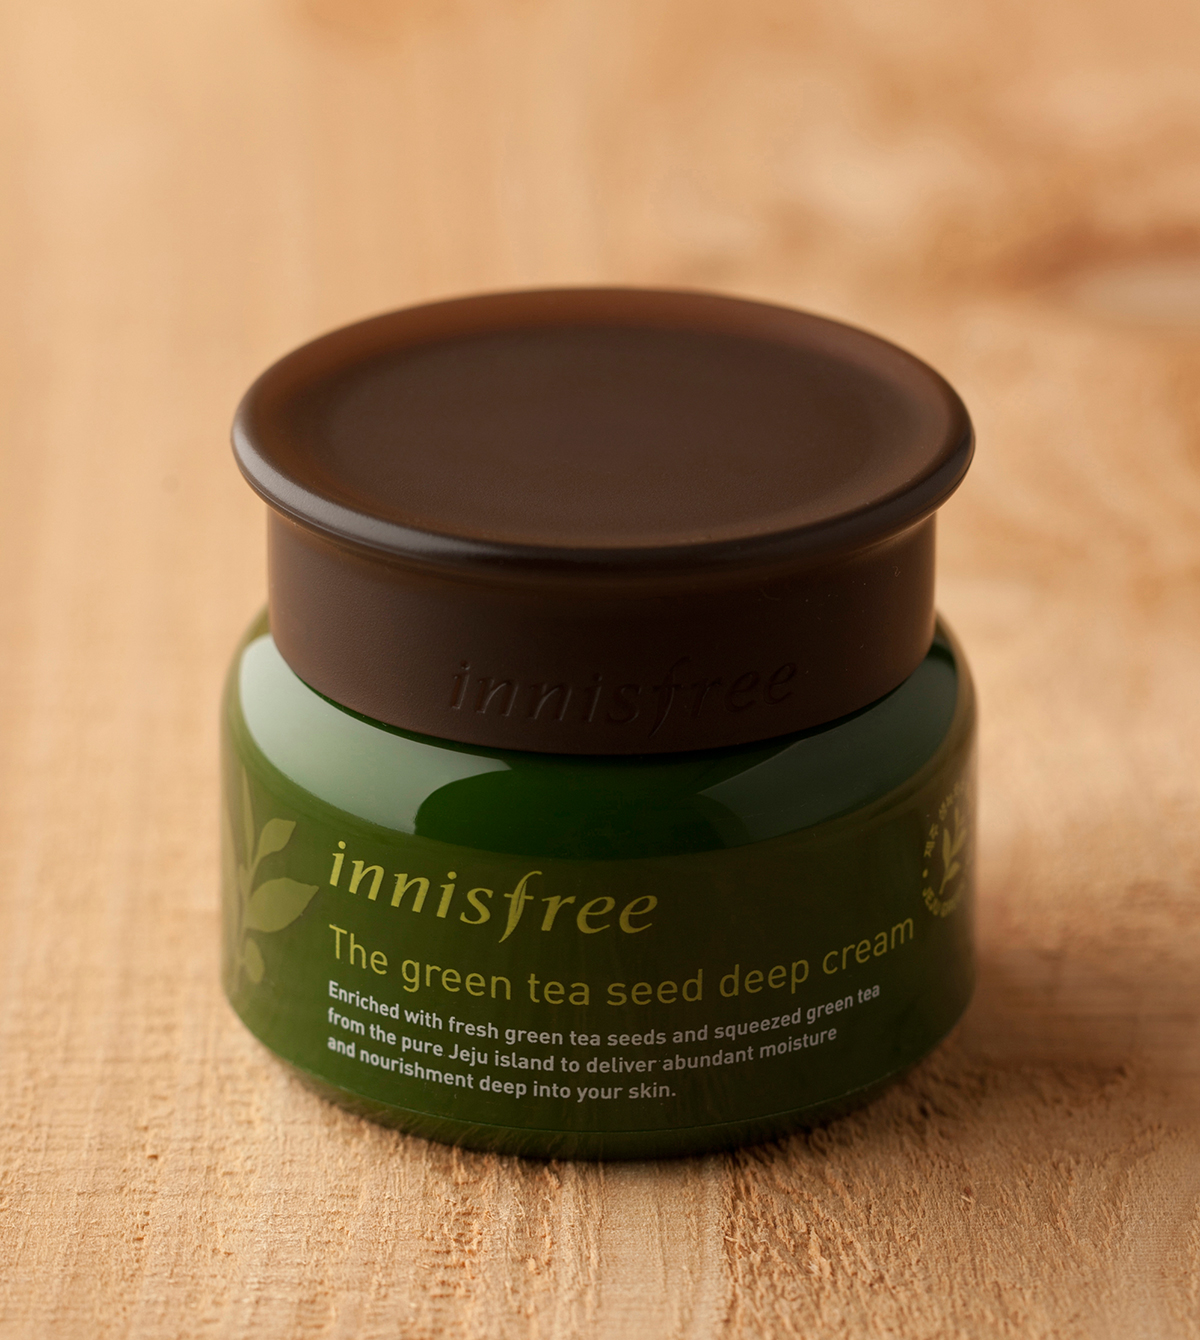 Innisfree The Green Tea Seed Deep Cream